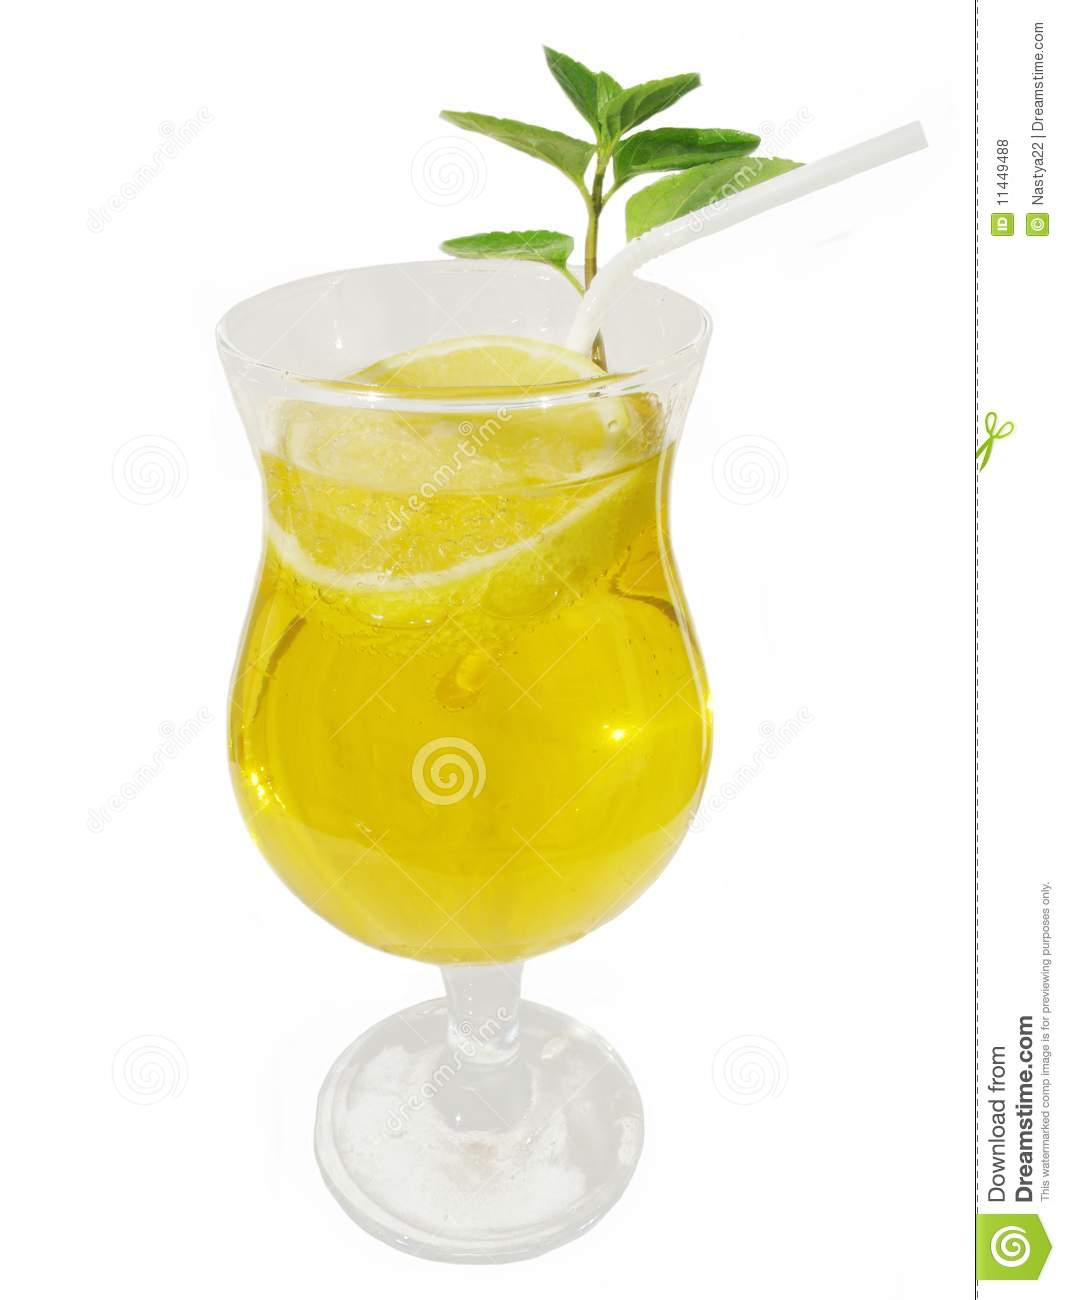 Similar stock images of lemonade in a glass with a lemon slice